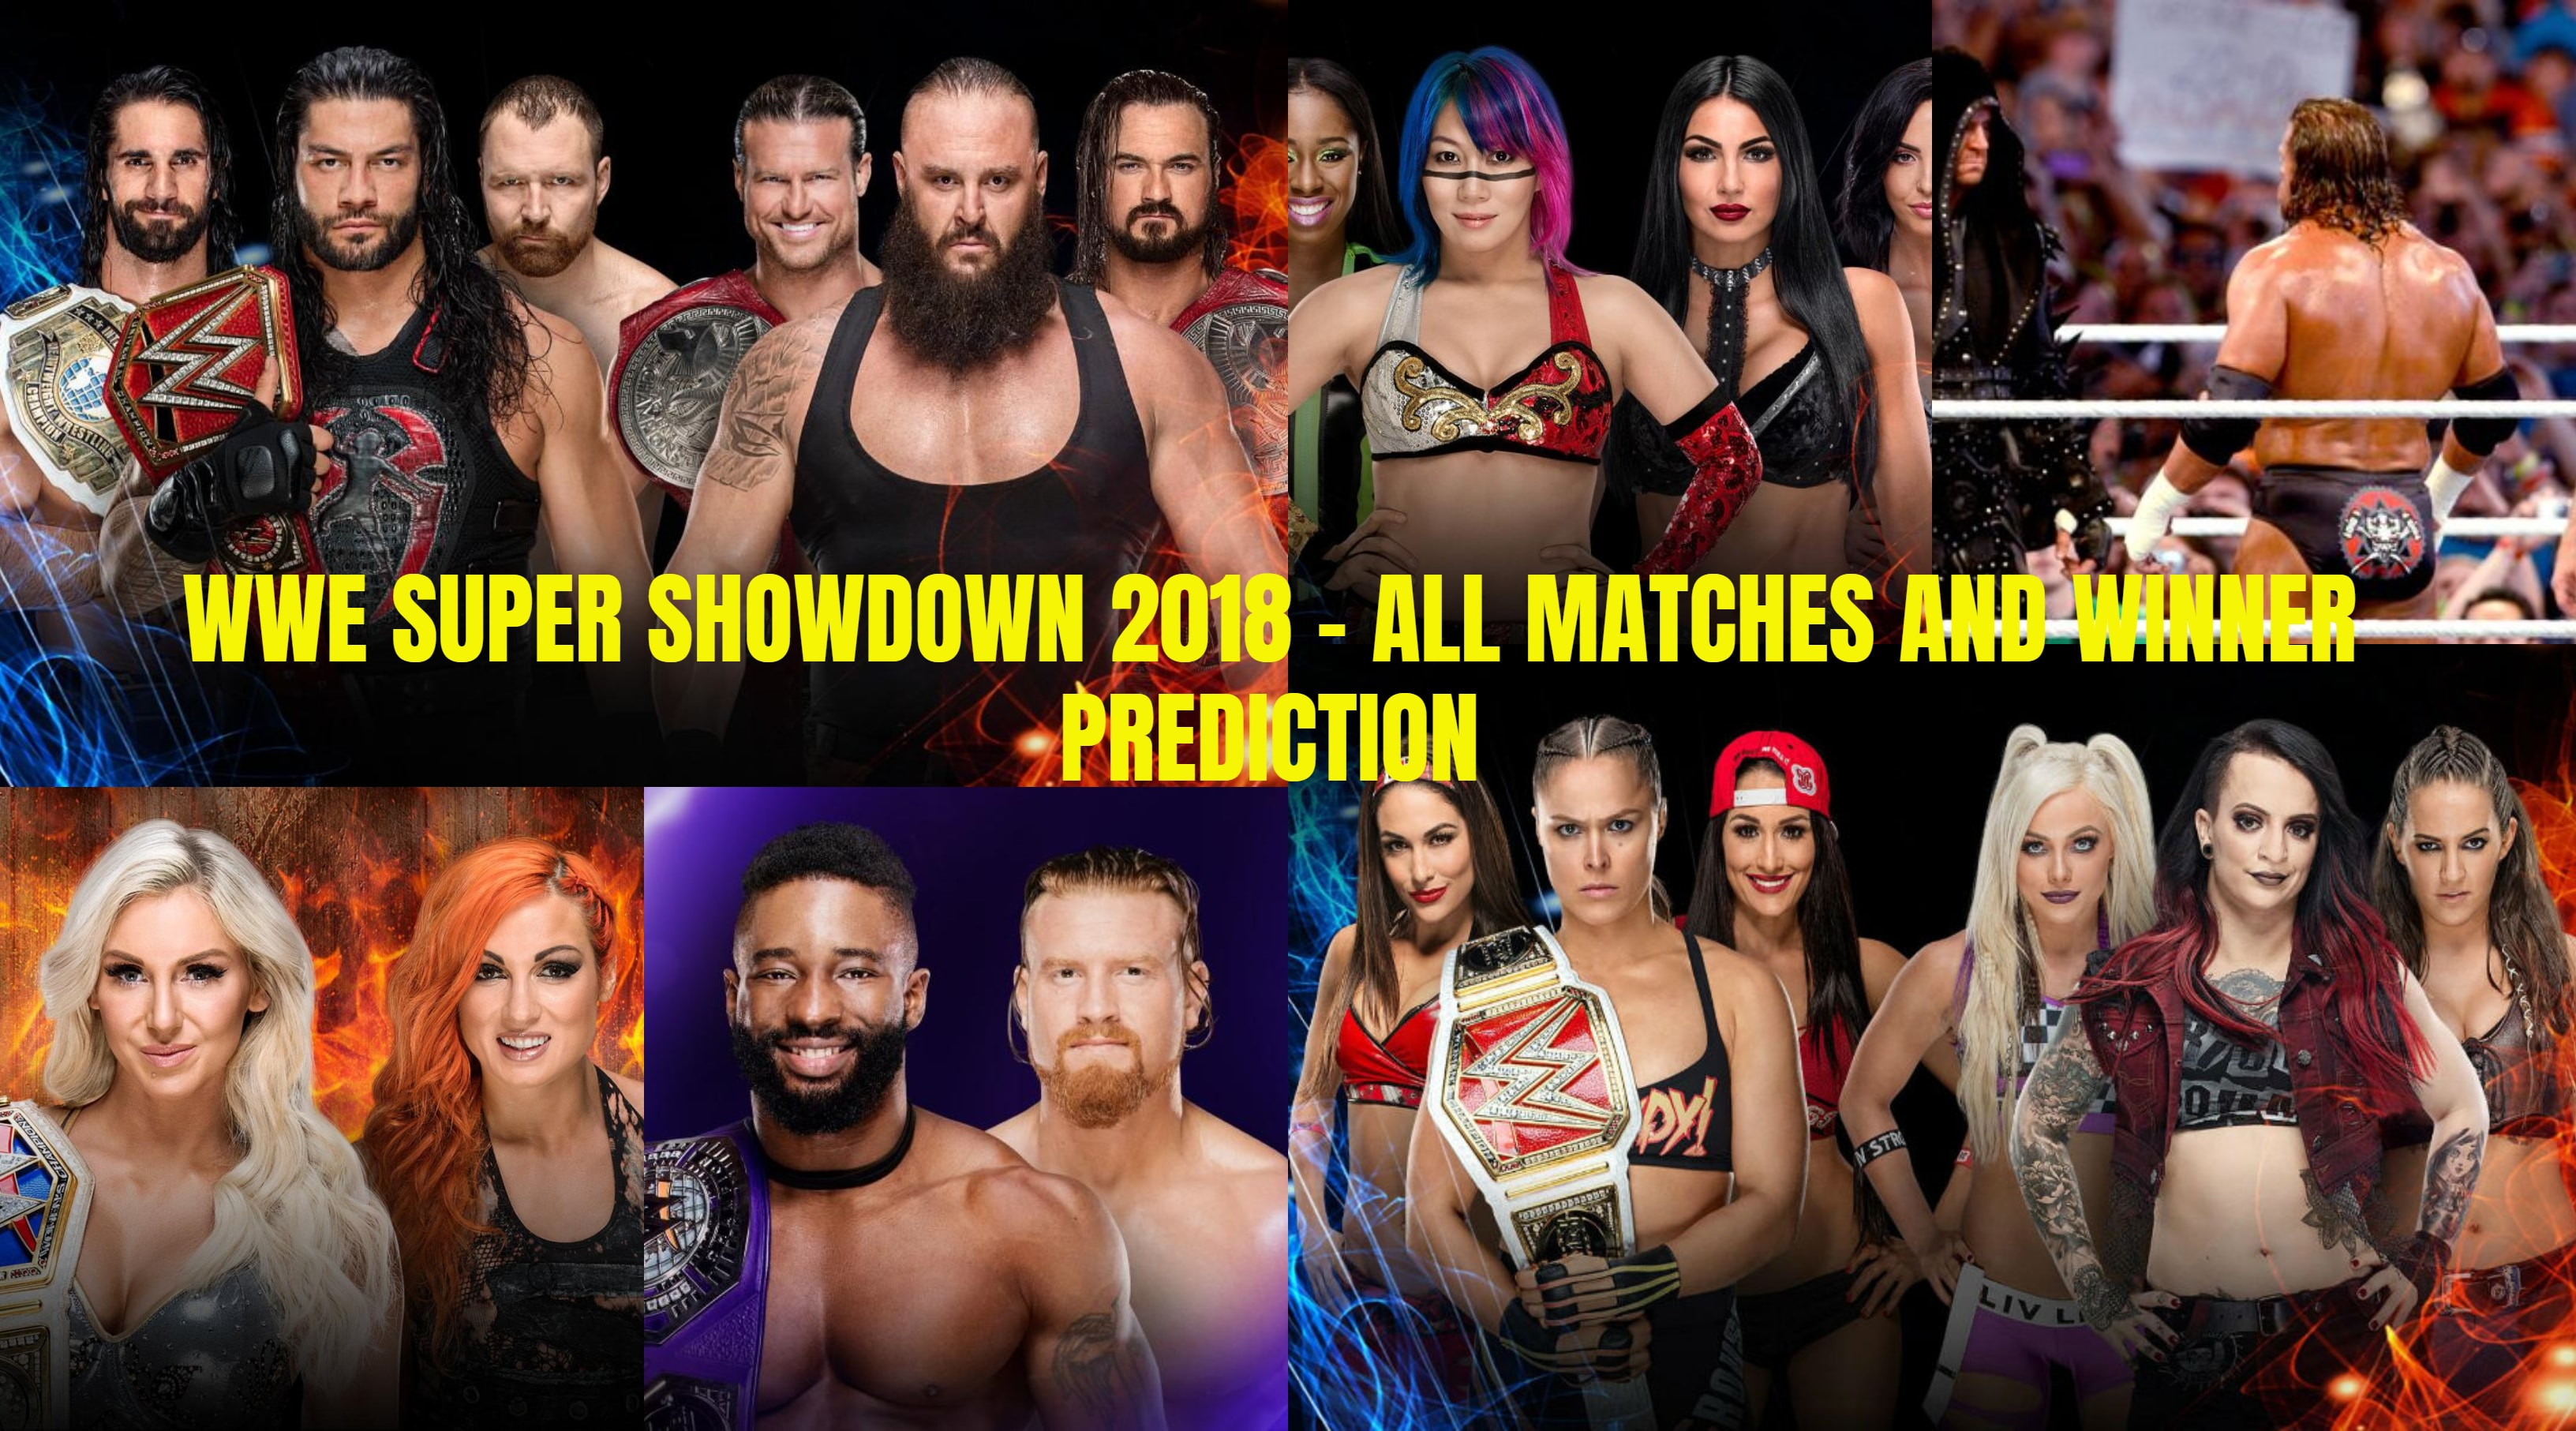 WWE SUPER SHOWDOWN 2018 – ALL MATCHES AND WINNER PREDICTION